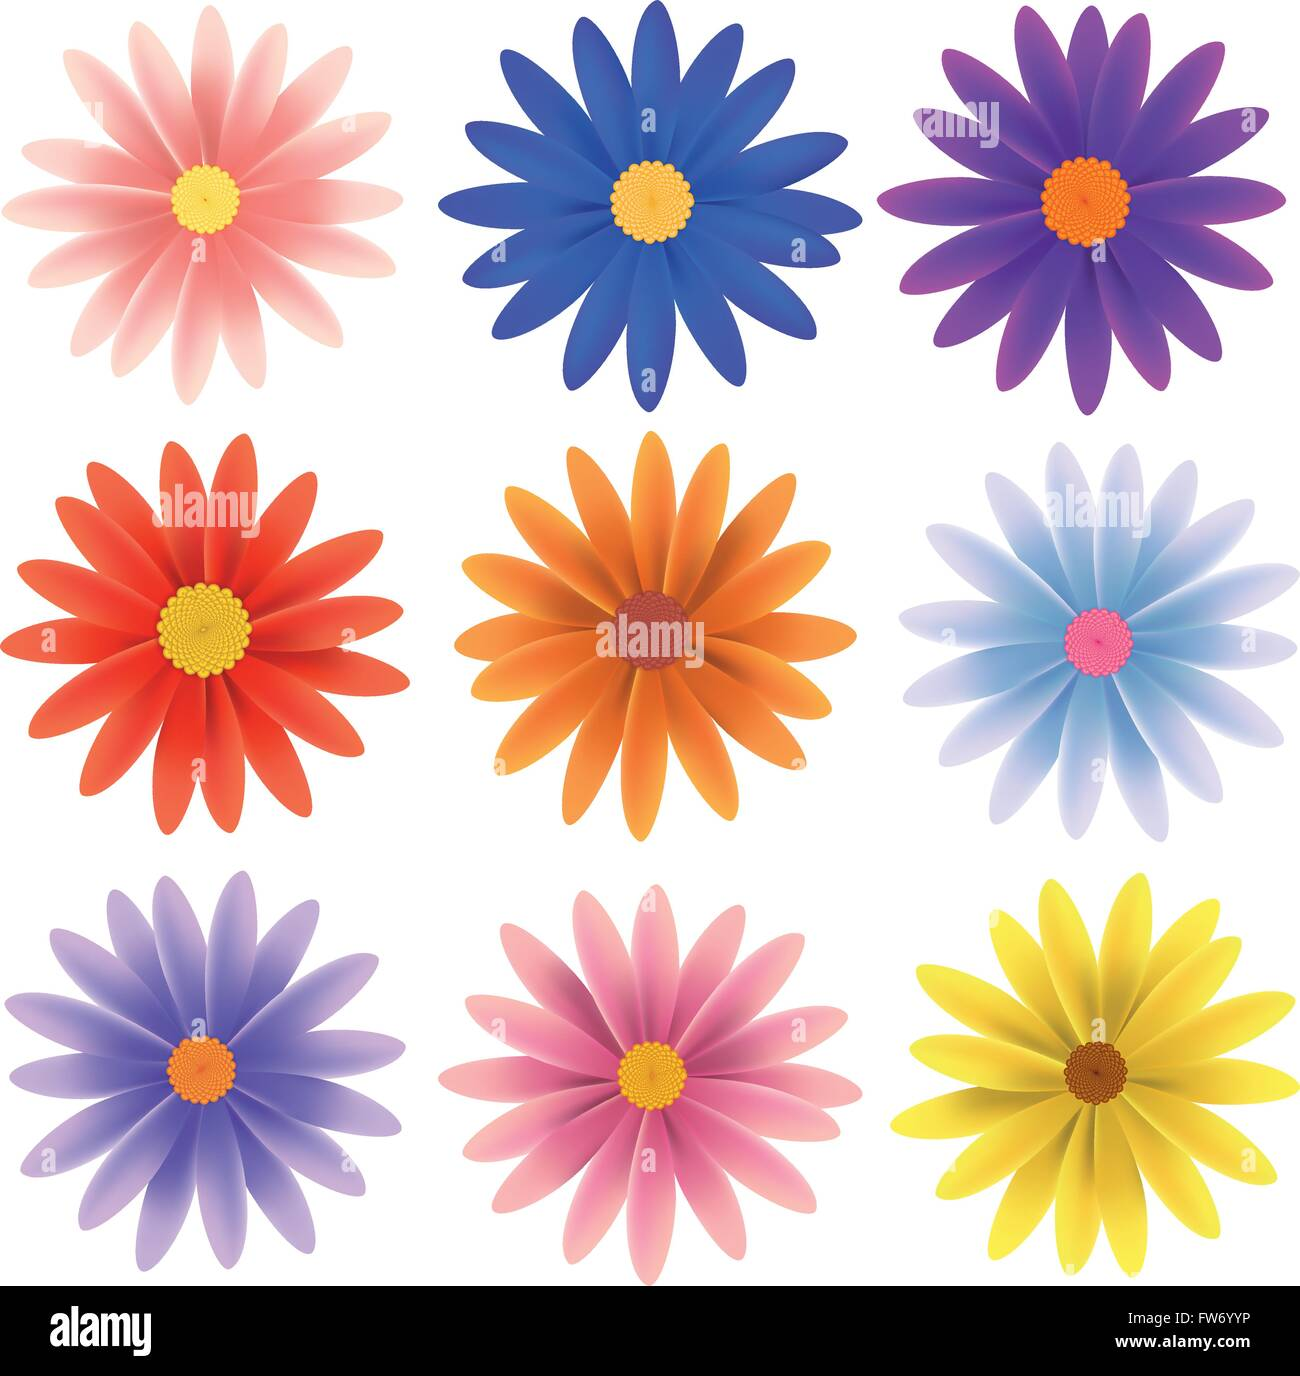 hight resolution of set of nine gerber daisy flowers in various colors isolated on white vector illustration stock